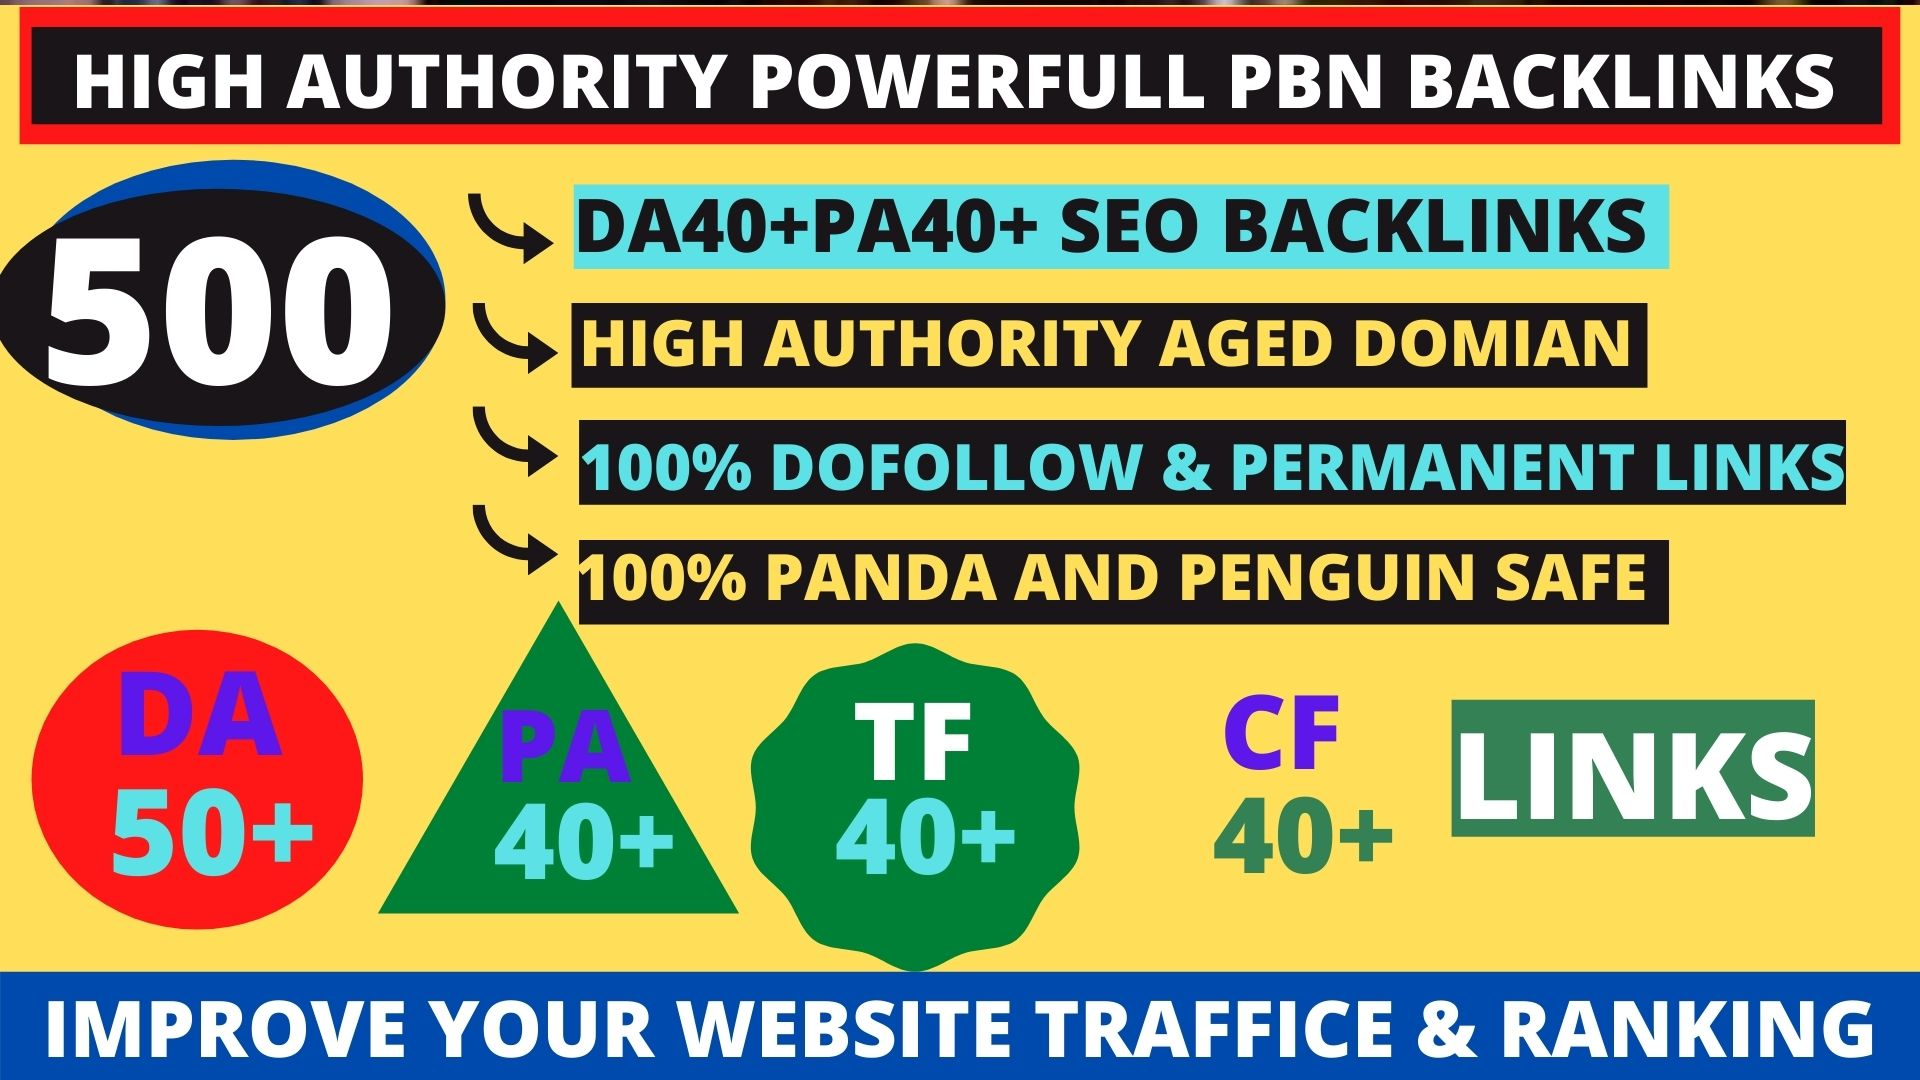 Get powerfull 500+ pbn backlink with high DA50+ PA40+ on your homepage with unique website